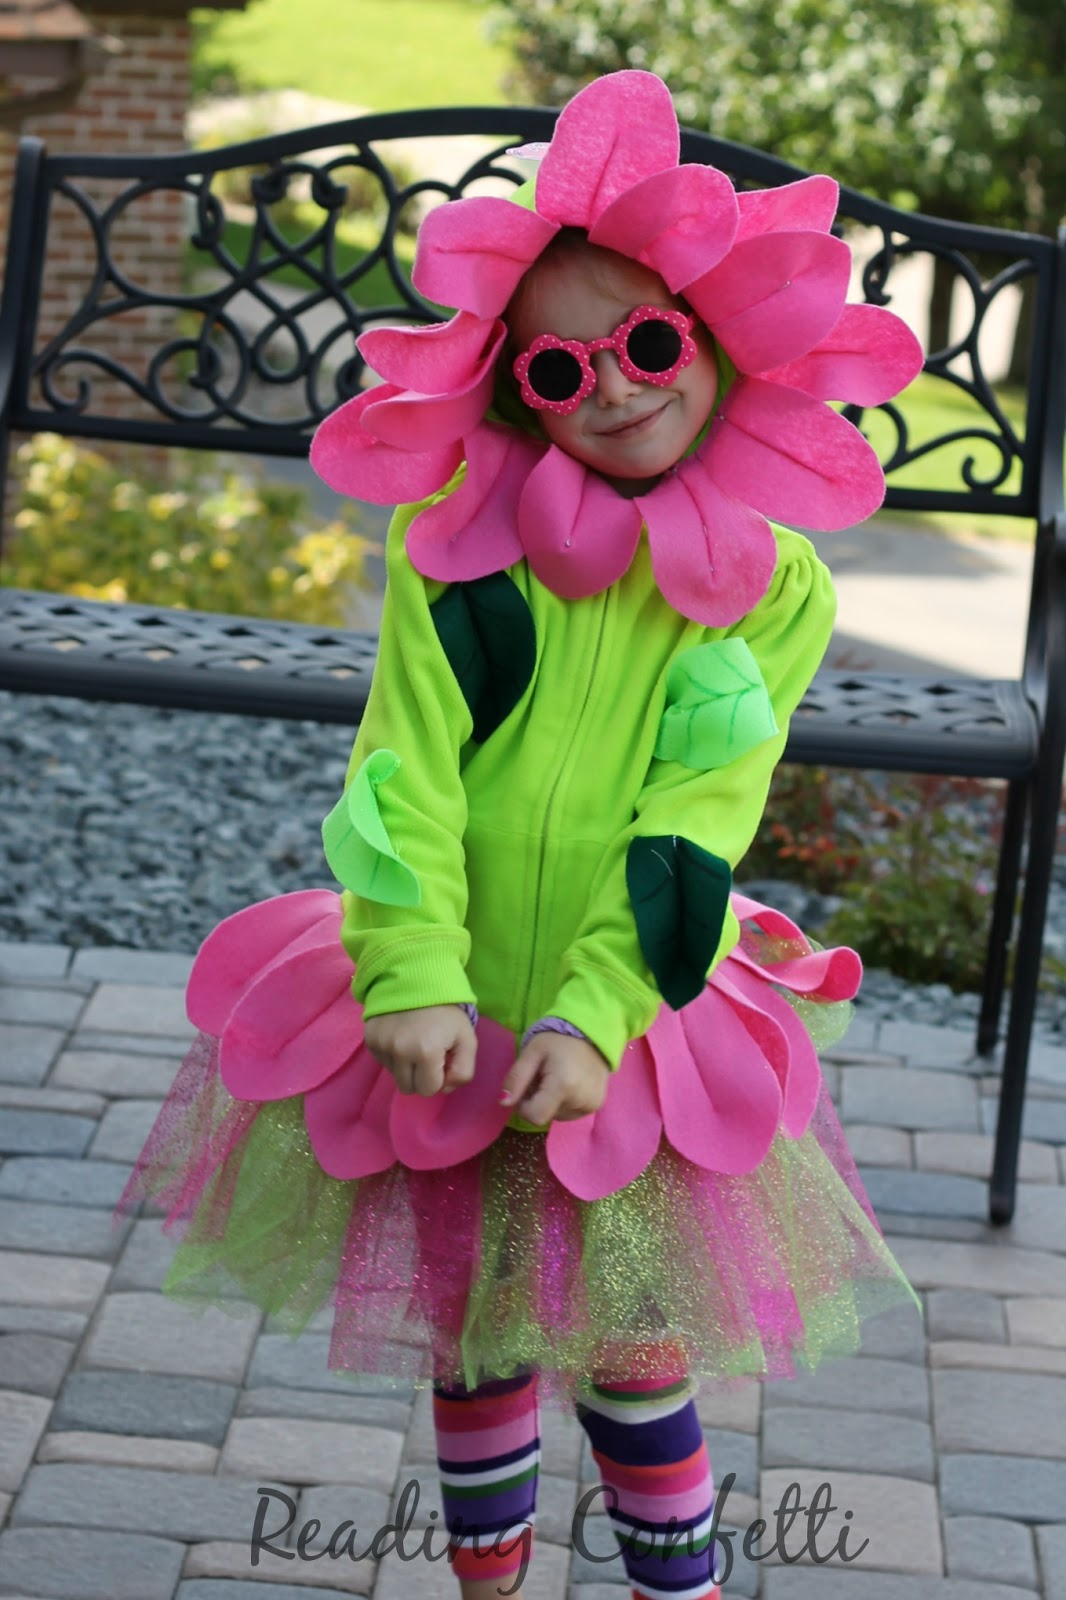 This cute flower costume is easy to make from a hooded sweatshirt and